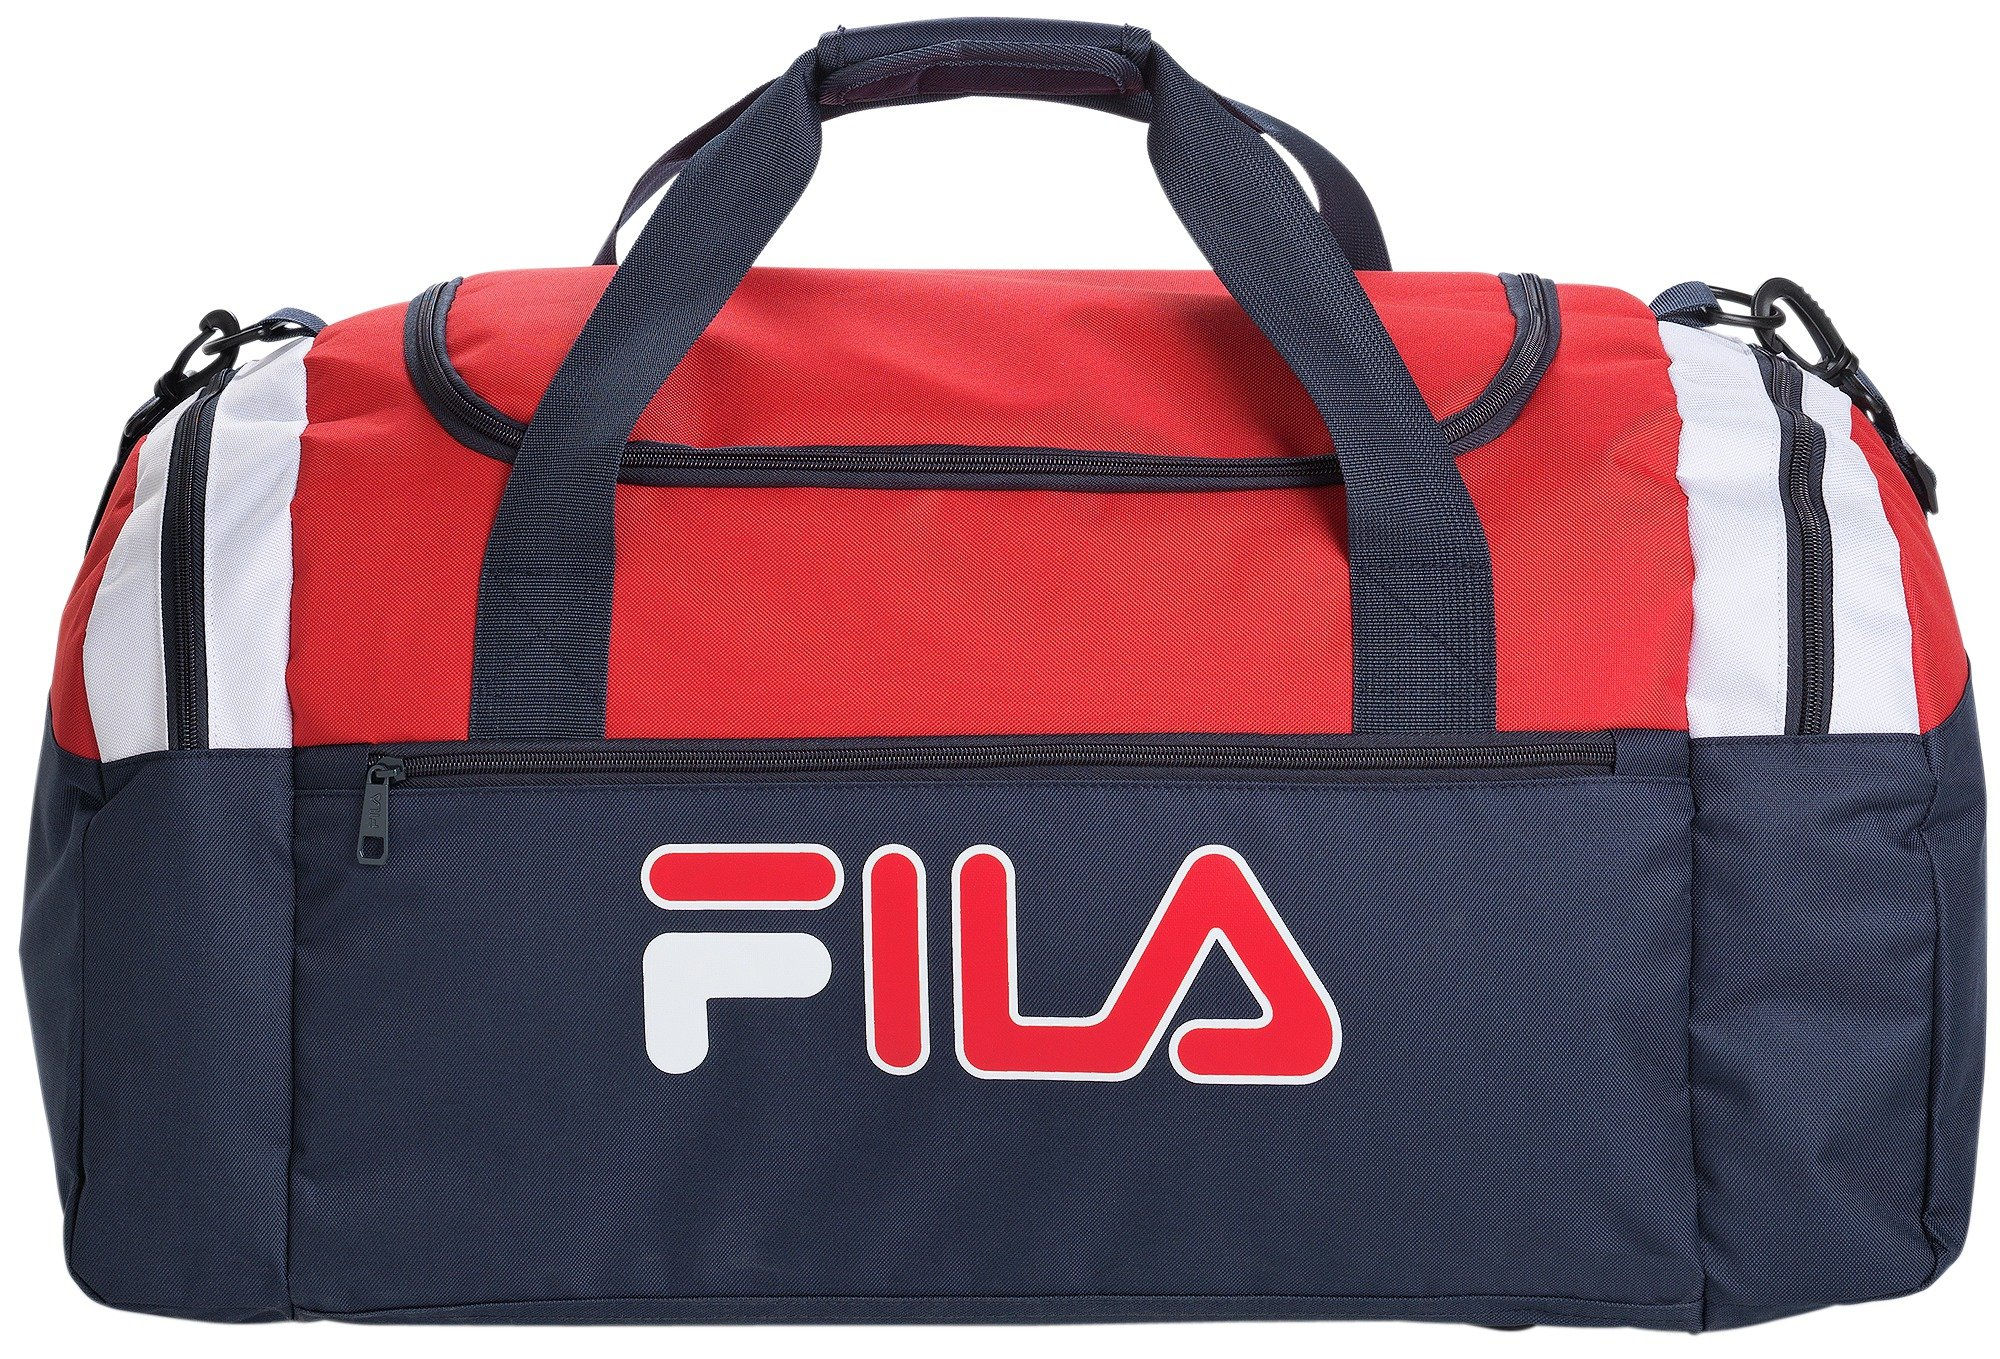 FILA Large Holdall - Navy/Red